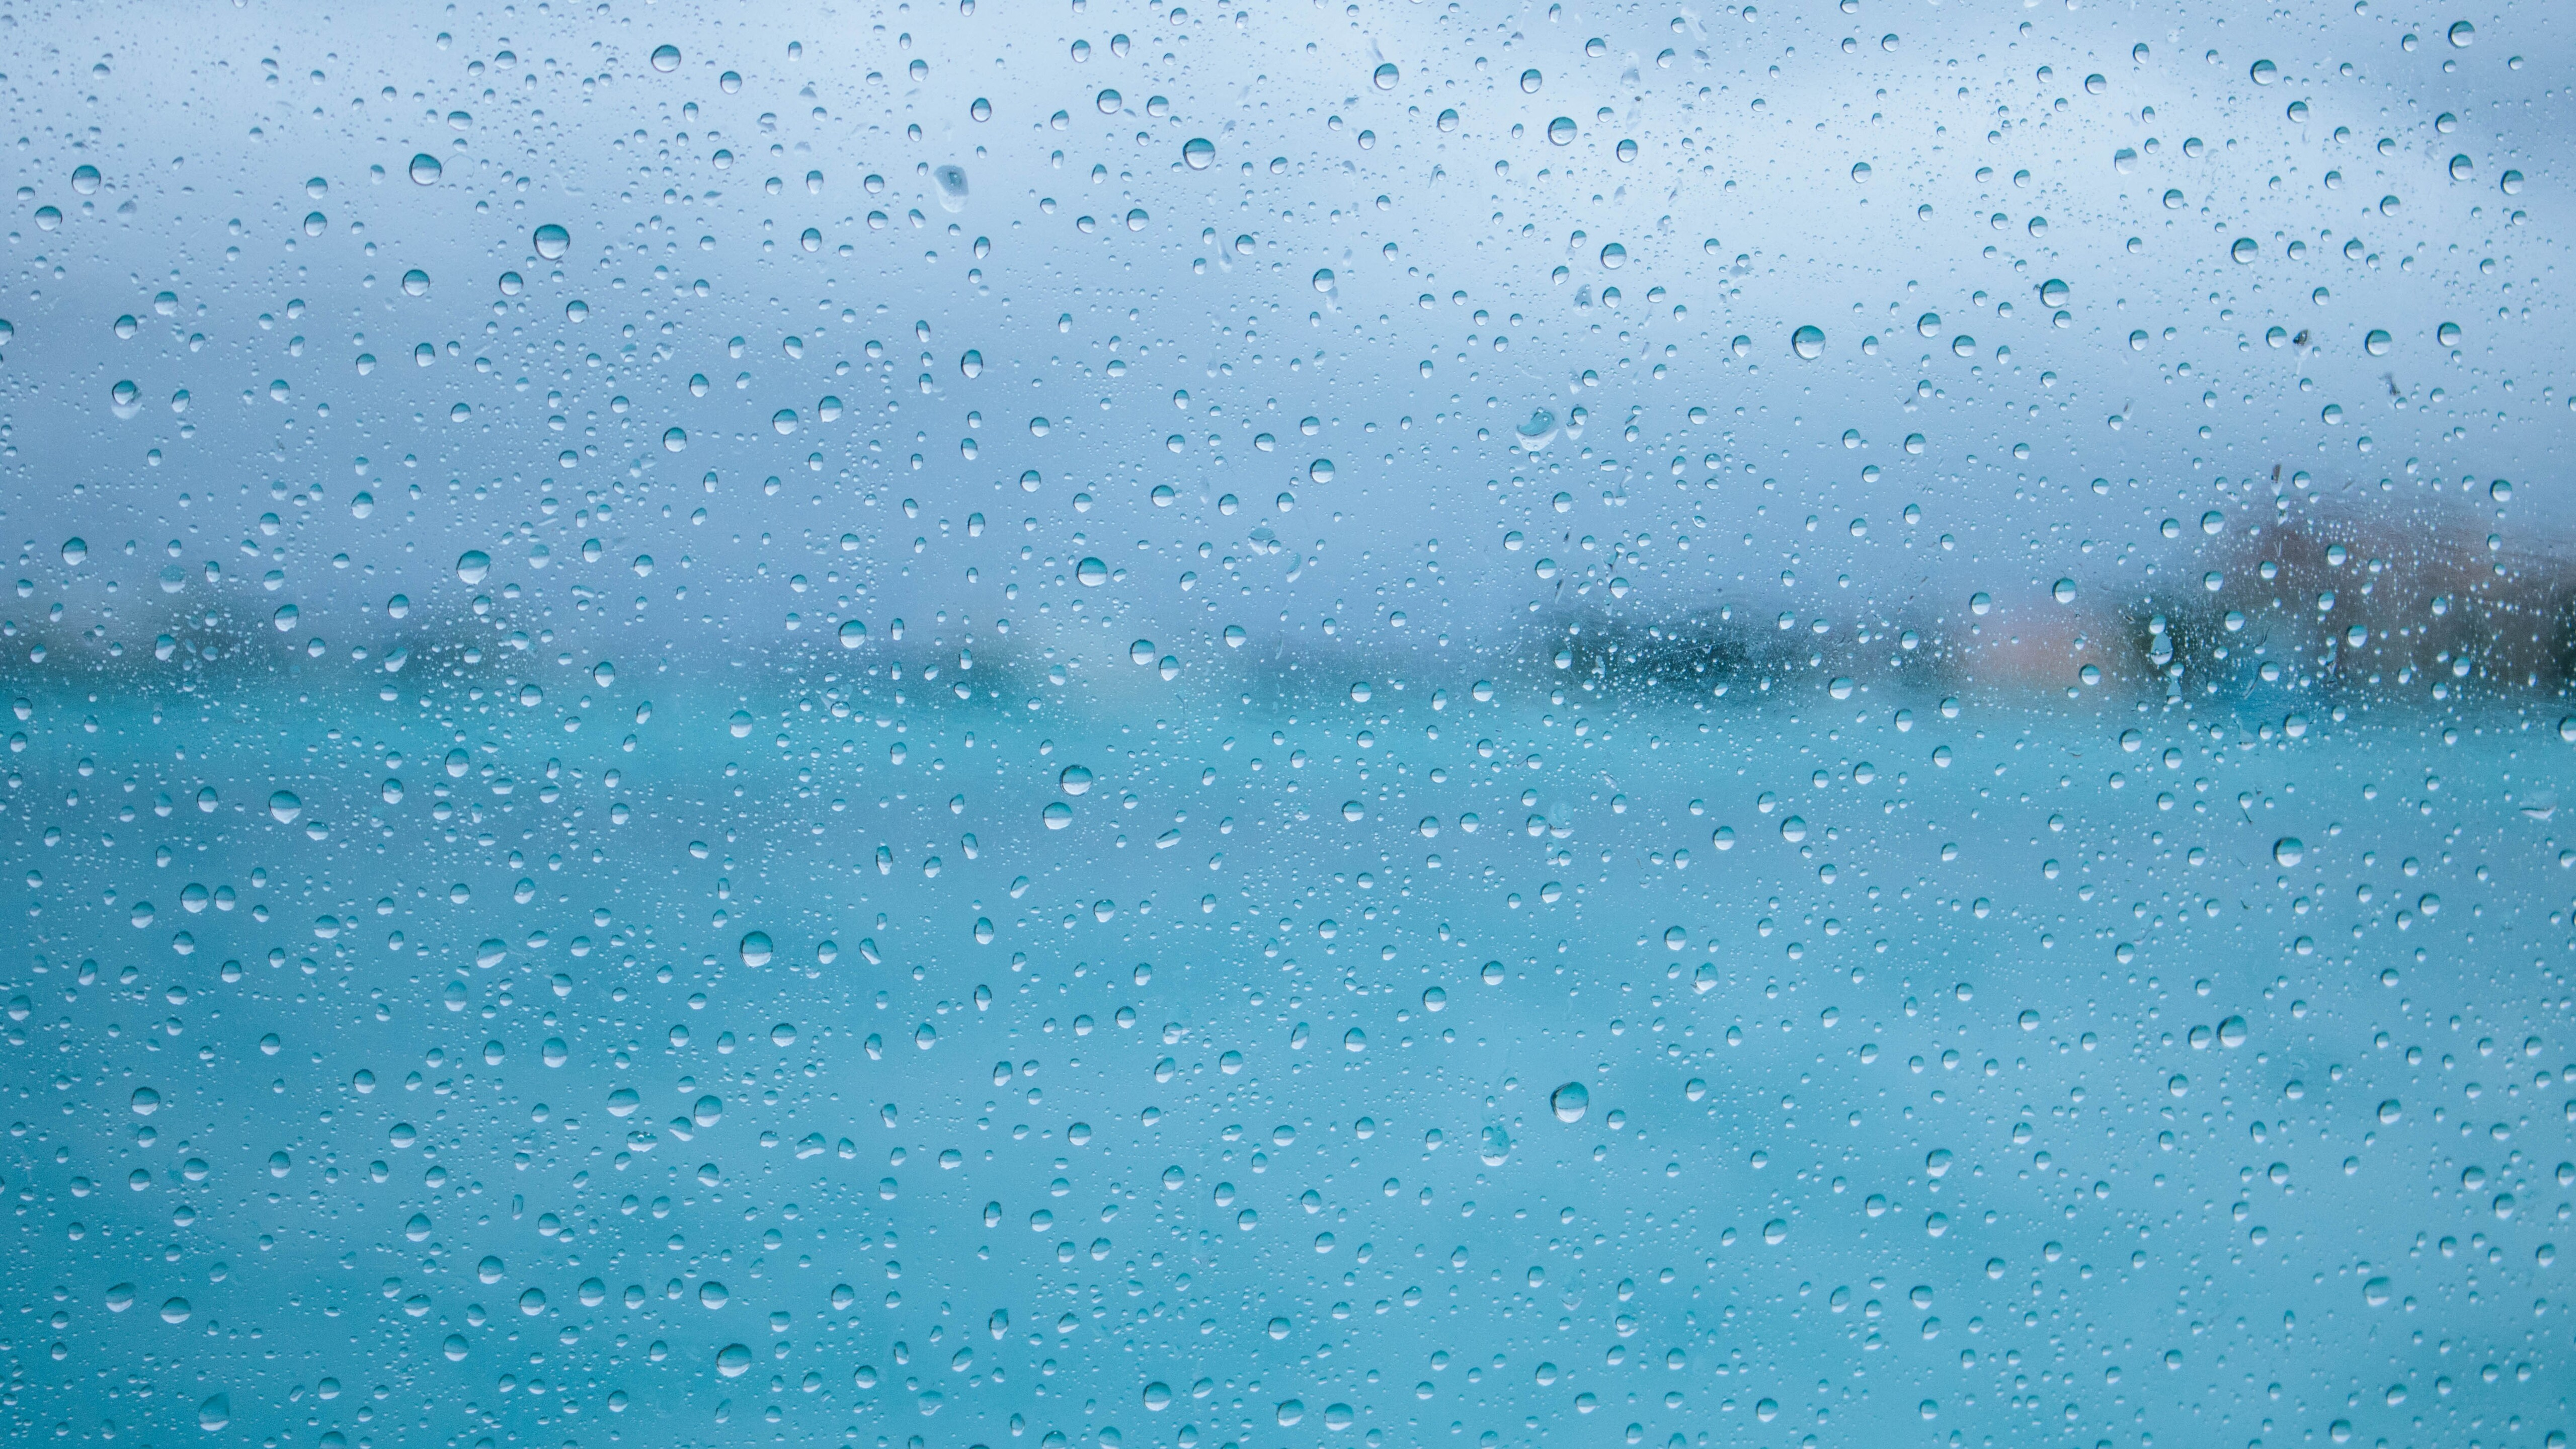 water droplets on glass 5k imagejpg